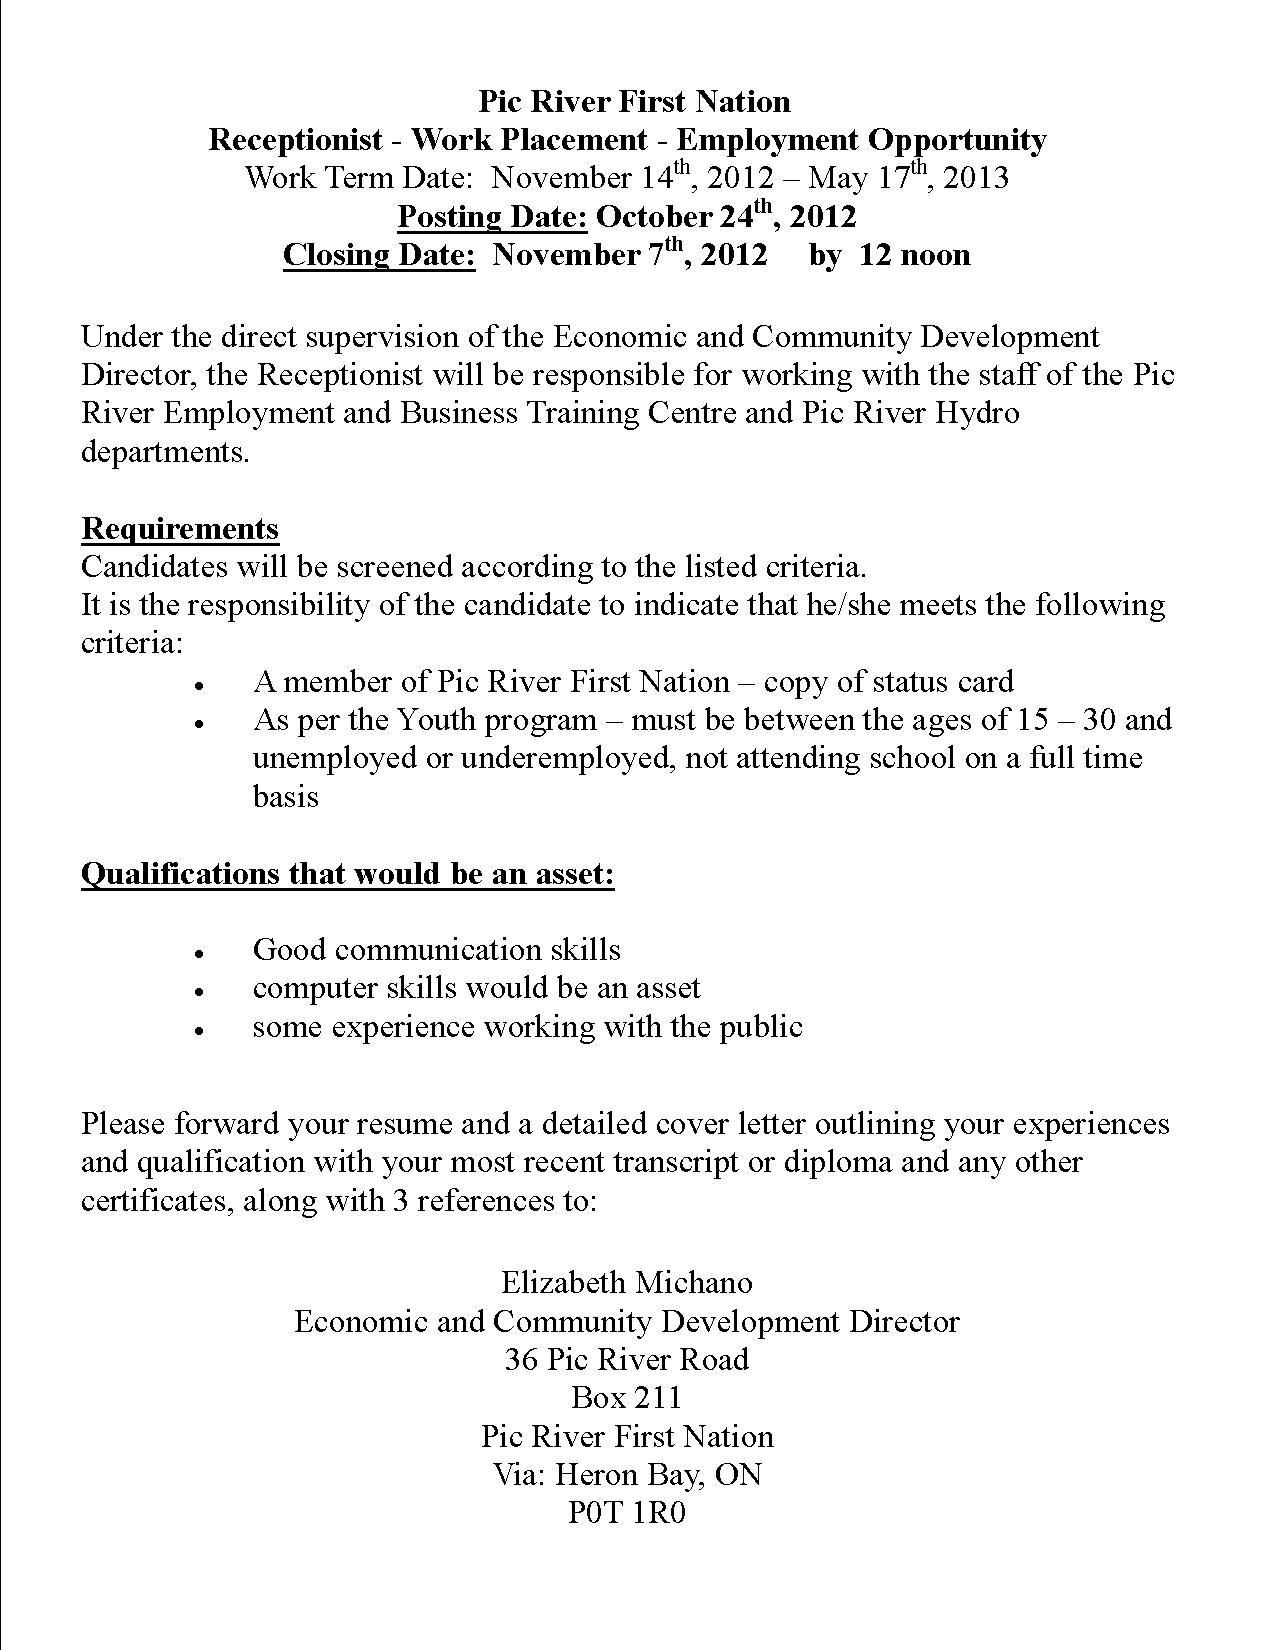 Member Service Representative Resume Samples Mary Rosenberg